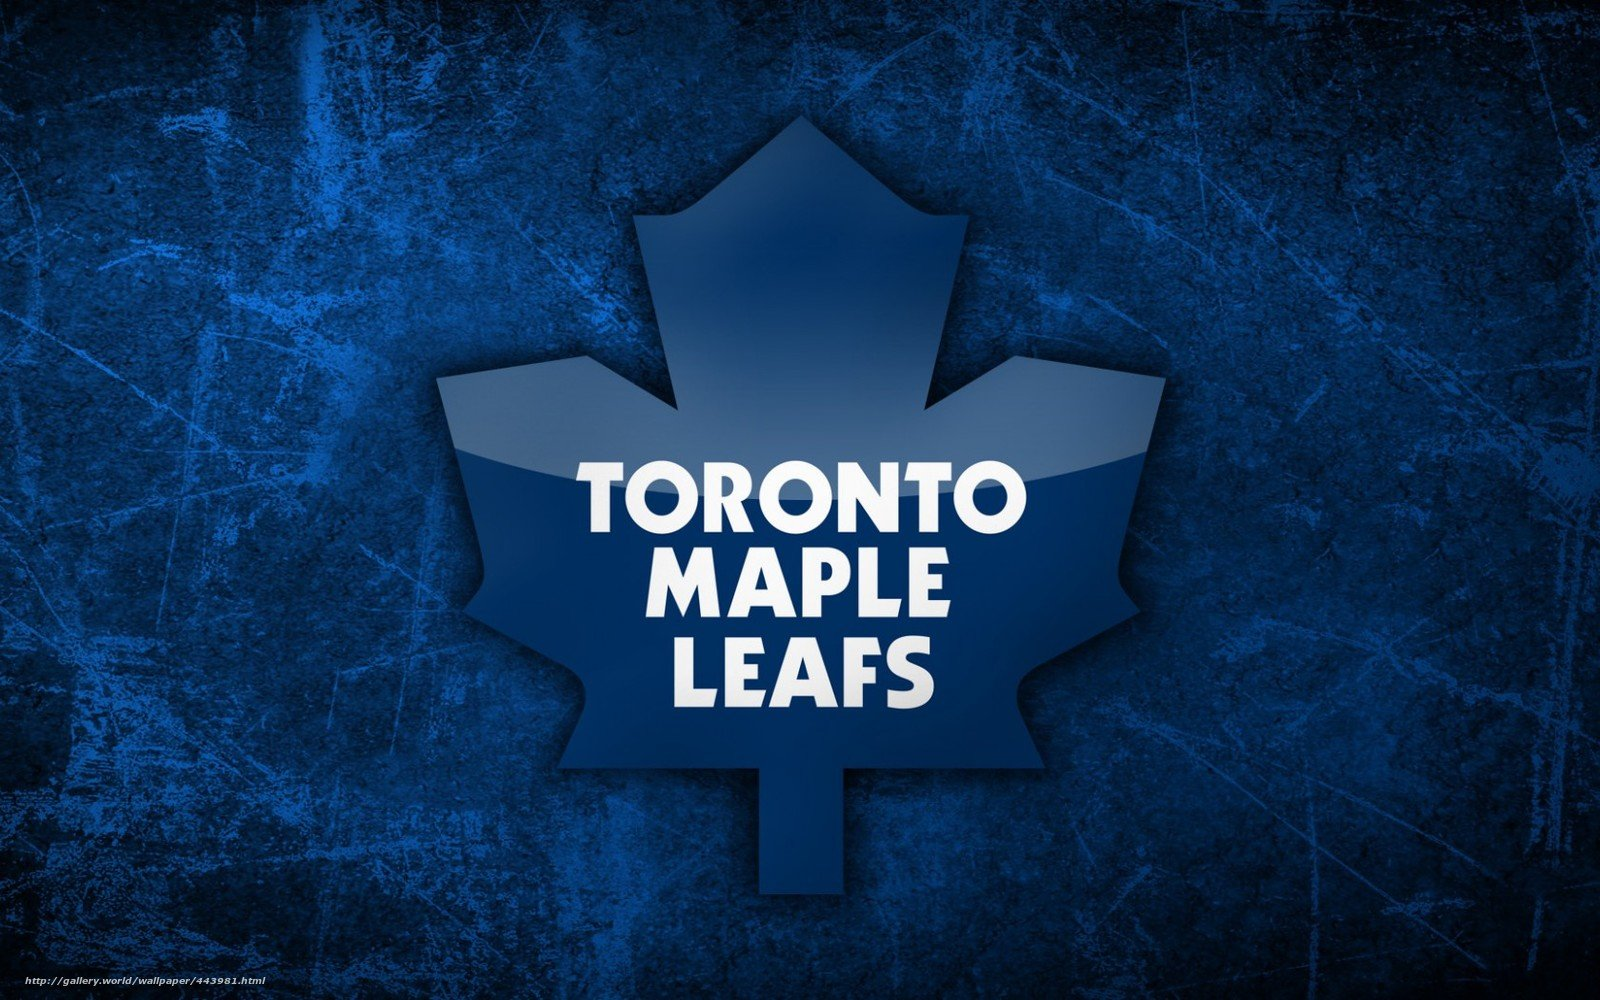 Download wallpaper NHL Toronto desktop wallpaper in the 1600x1000